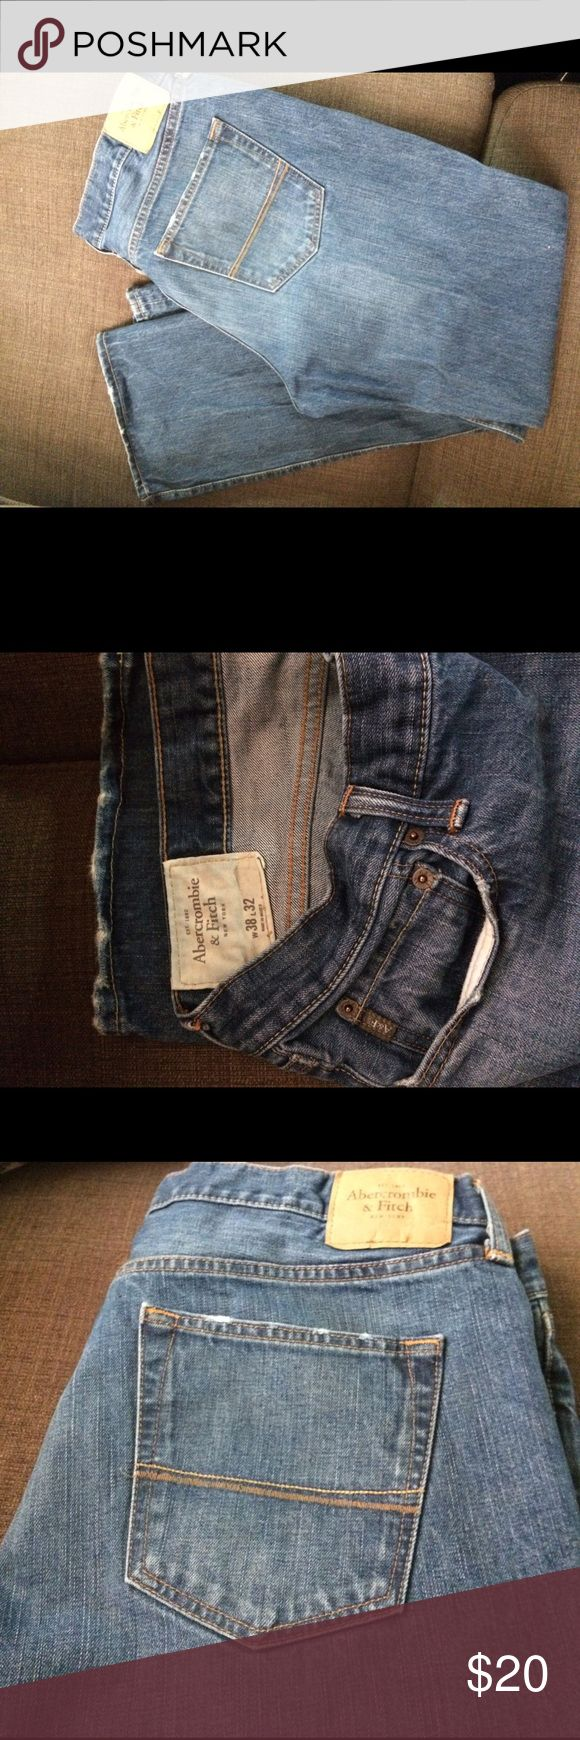 Abercrombie and Fitch jeans for Men Excellent condition. Worn twice. Size 38x32 men's Abercrombie boot cut jeans. Abercrombie & Fitch Jeans Bootcut